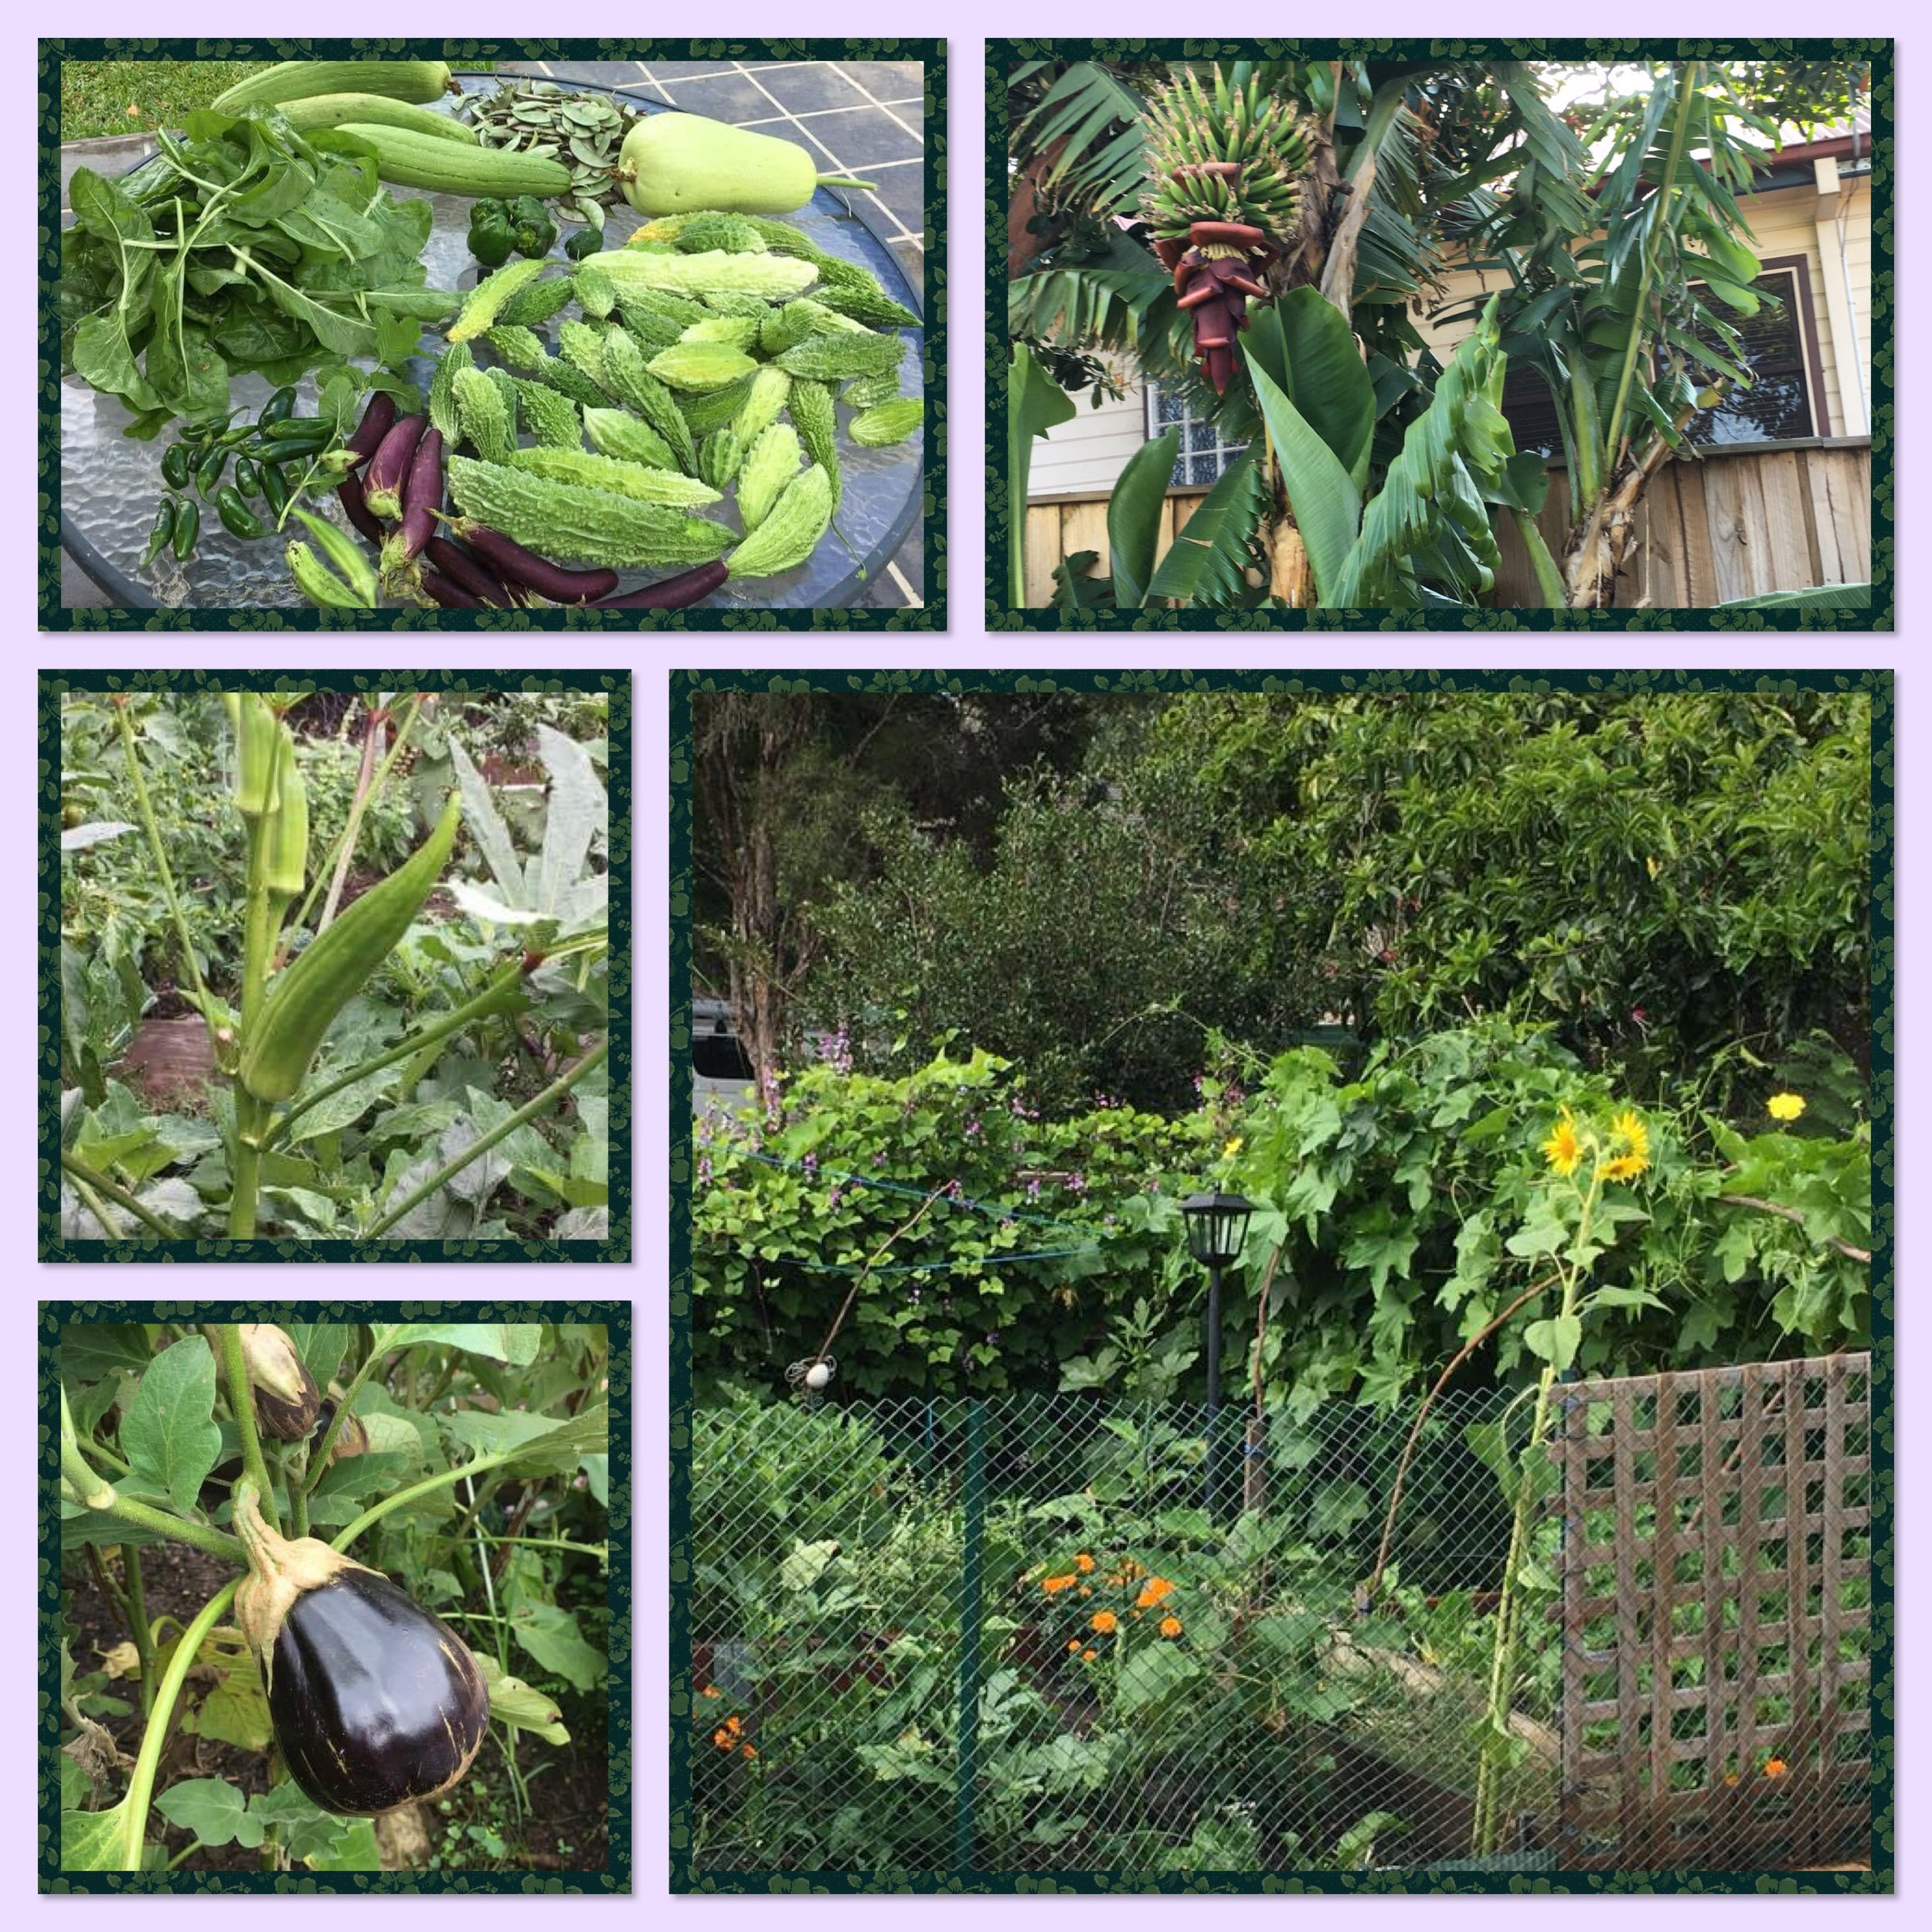 Permaculture garden and harvest at the Singh household      Source Priyanka Singh.JPG